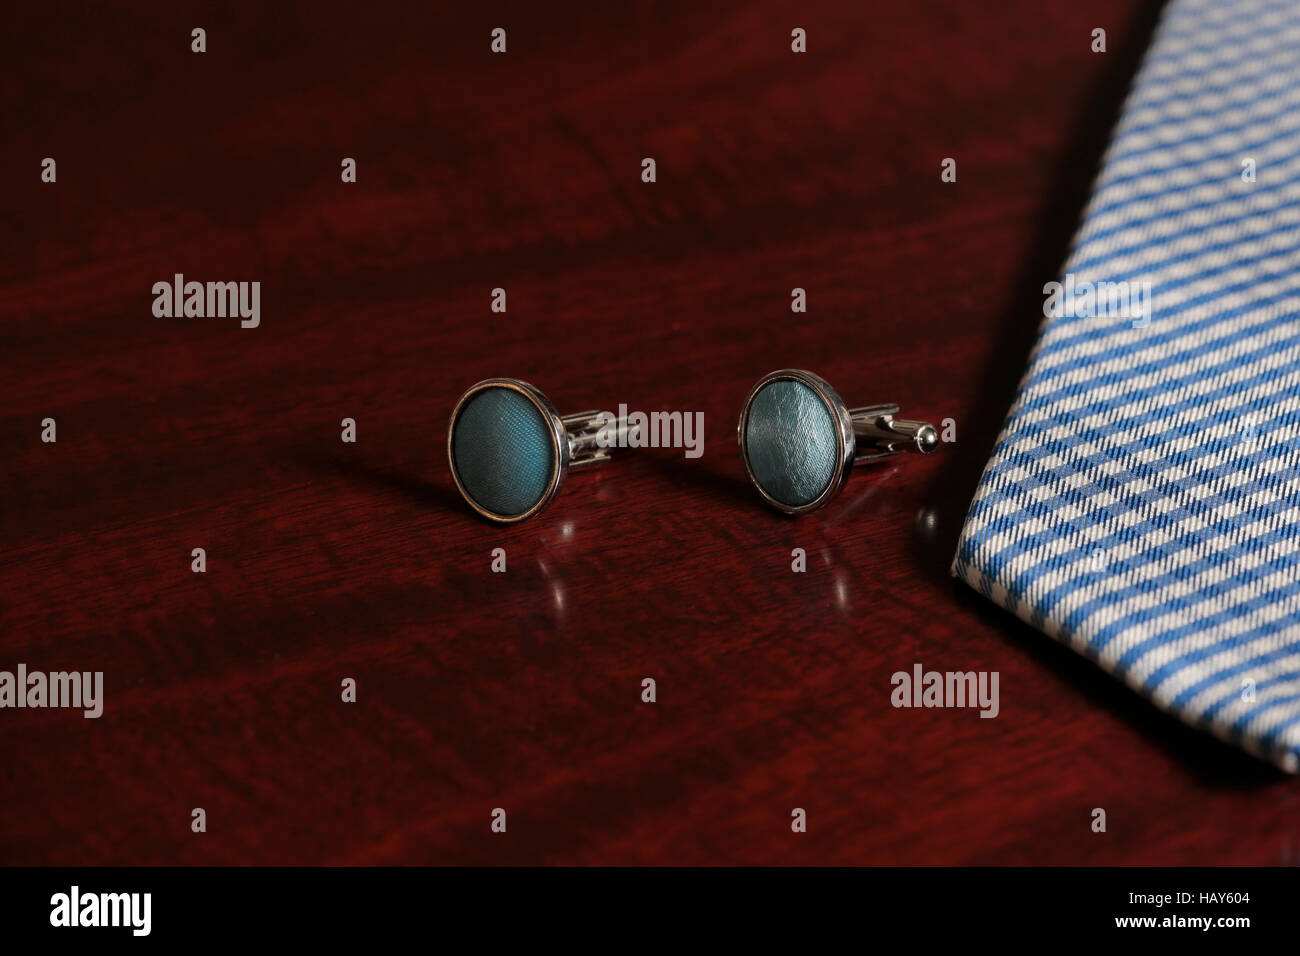 Cuff links and tie on mahogany wooden background - Stock Image